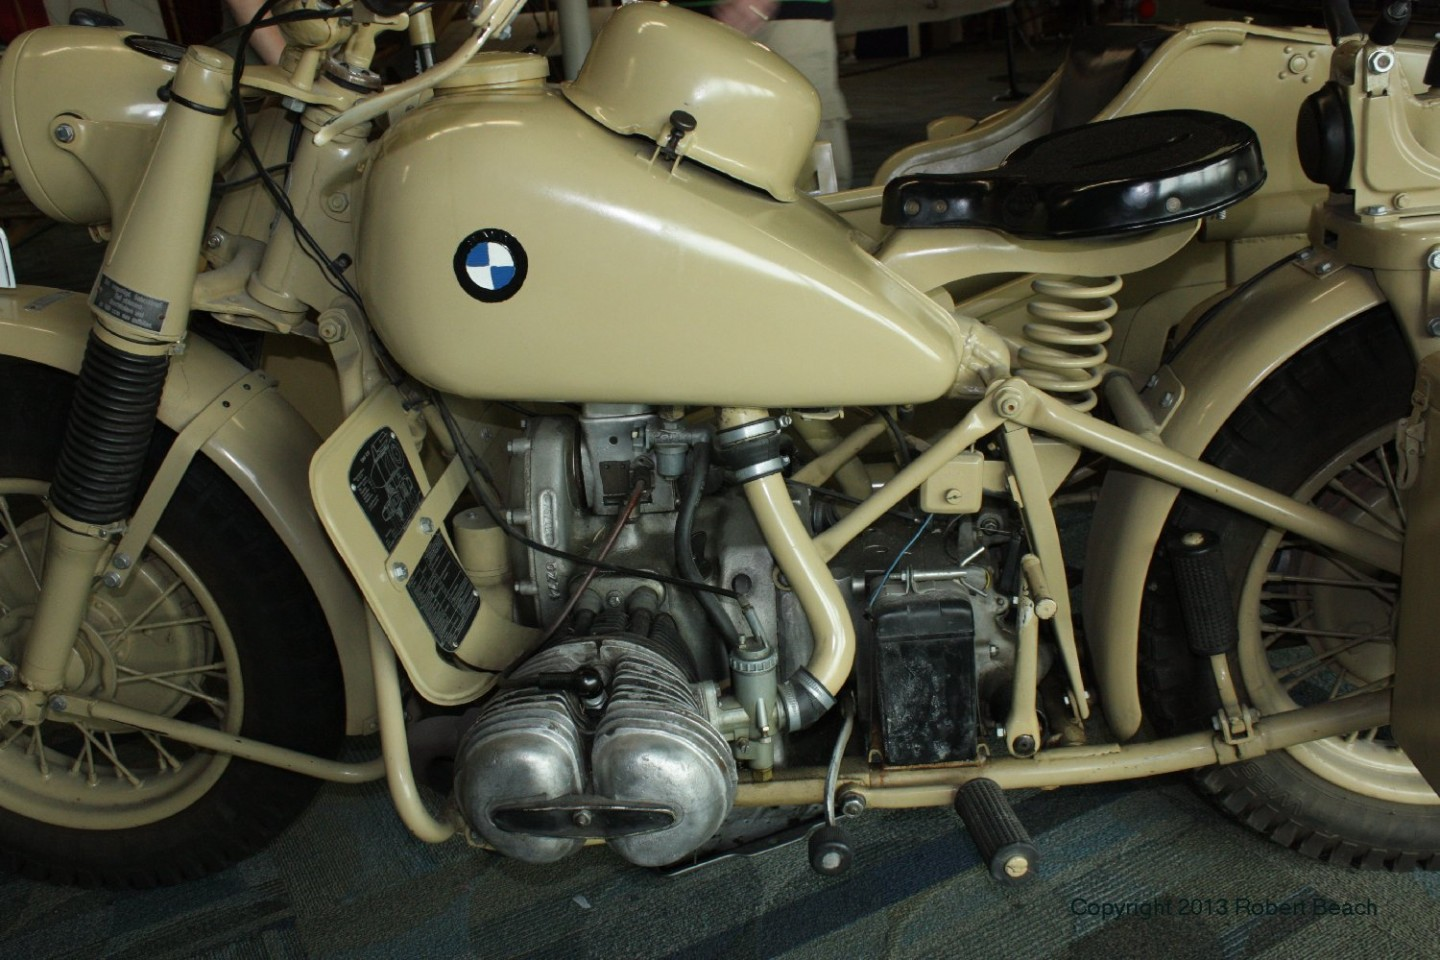 BMW_Mtrcycle_sidecar_cycle left side